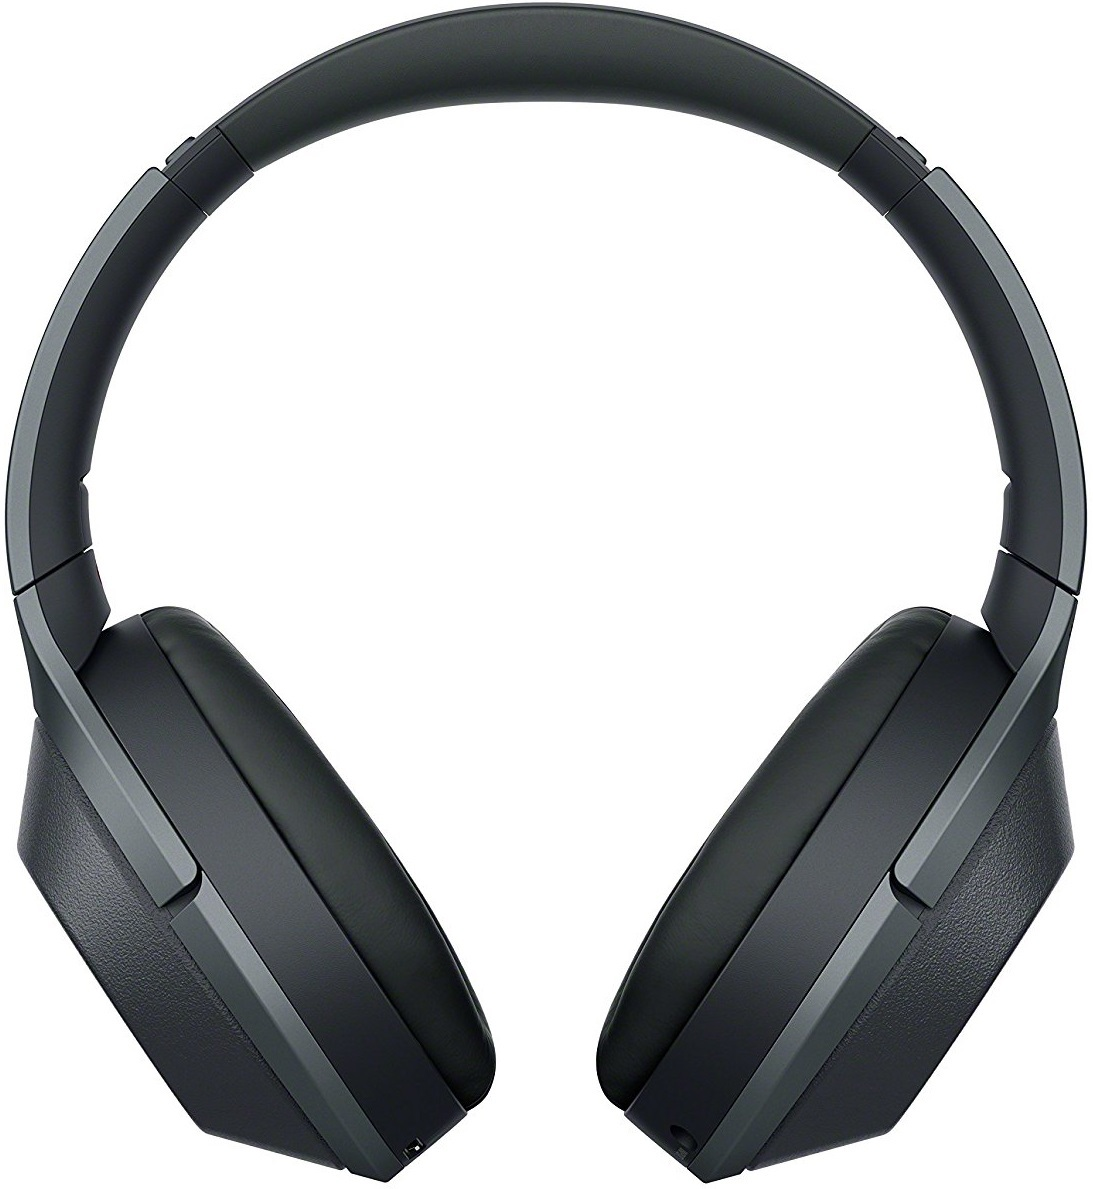 Sony WH-1000XM2 Wireless Noise Cancelling Headphones - Black image